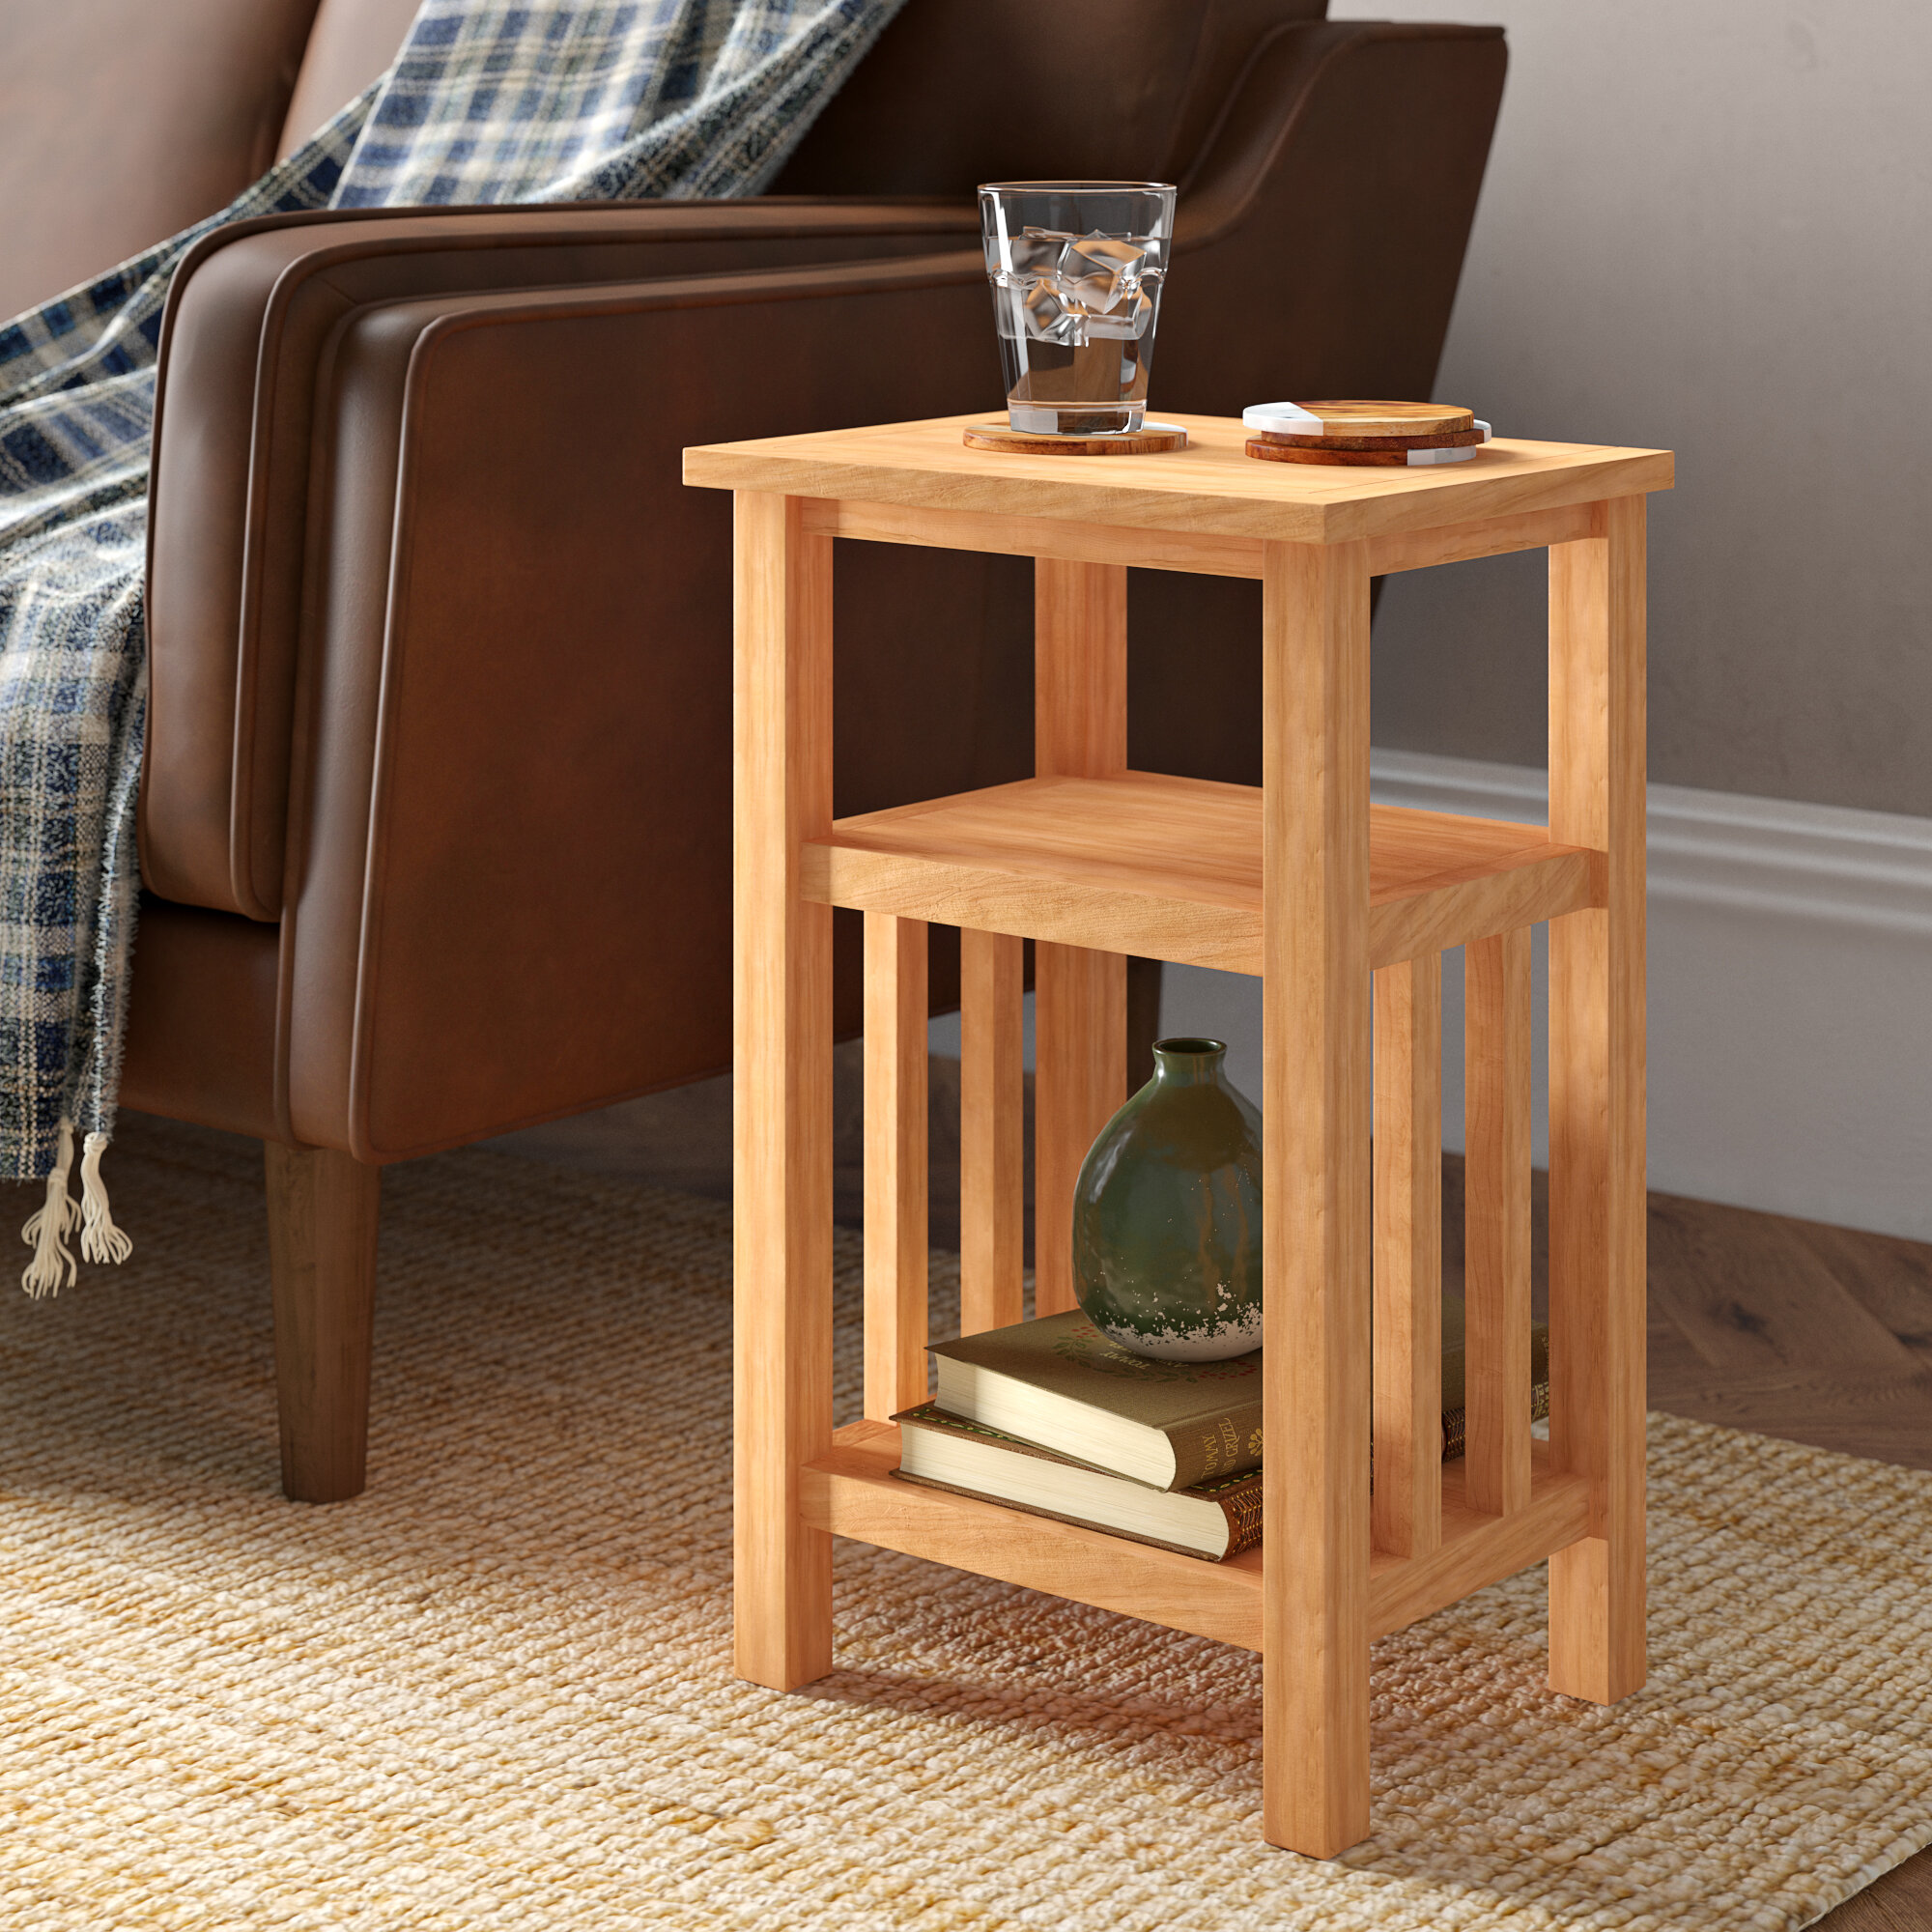 Light Wood Millwood Pines End Side Tables You Ll Love In 2021 Wayfair